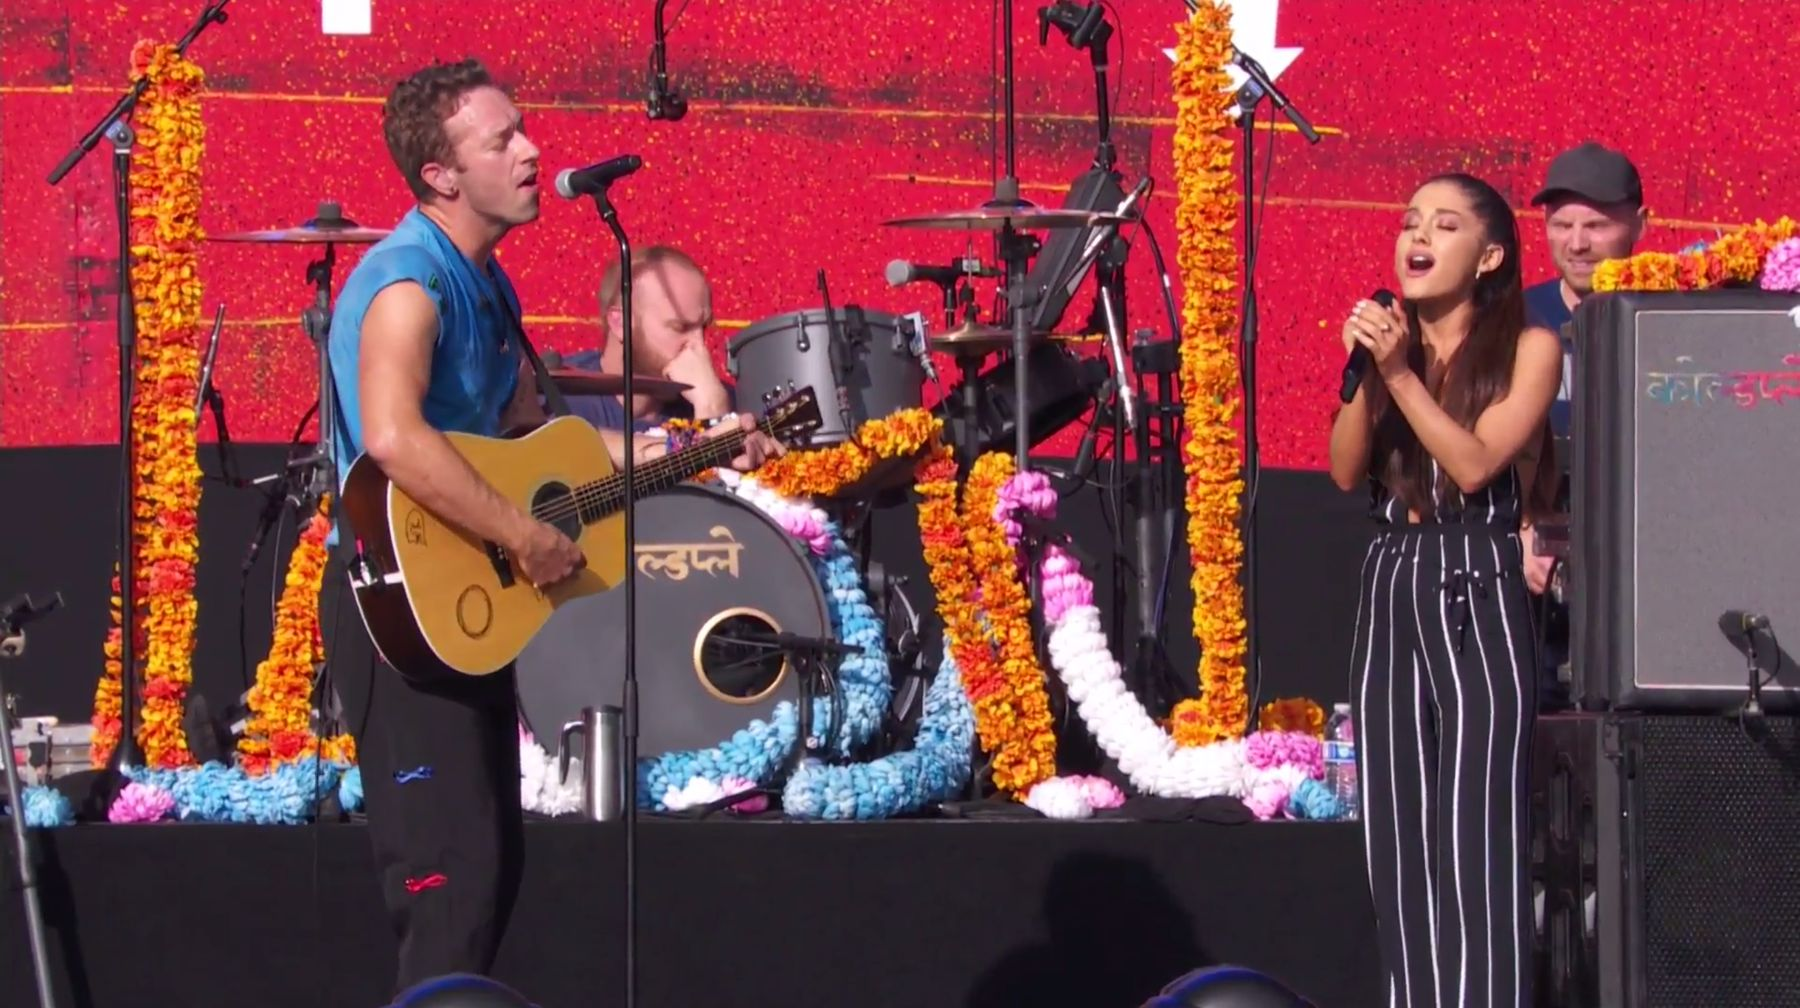 livestream global citizen festival 2016  watch coldplay debut new song amazing day perform ariana grande at global